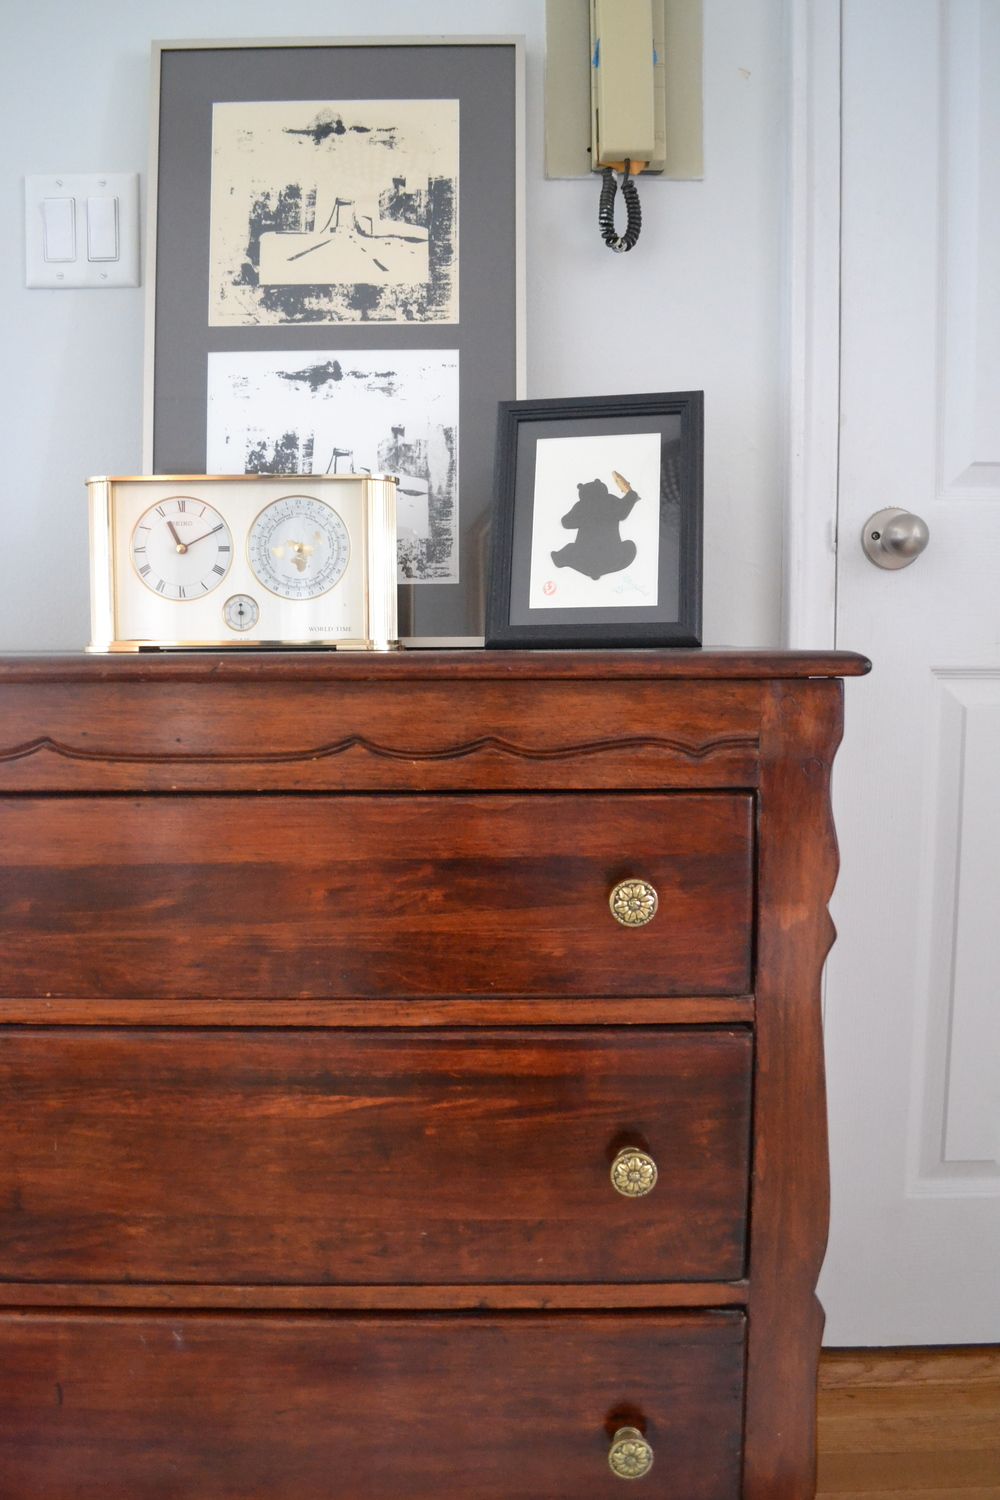 How cute are the knobs and details on this piece?